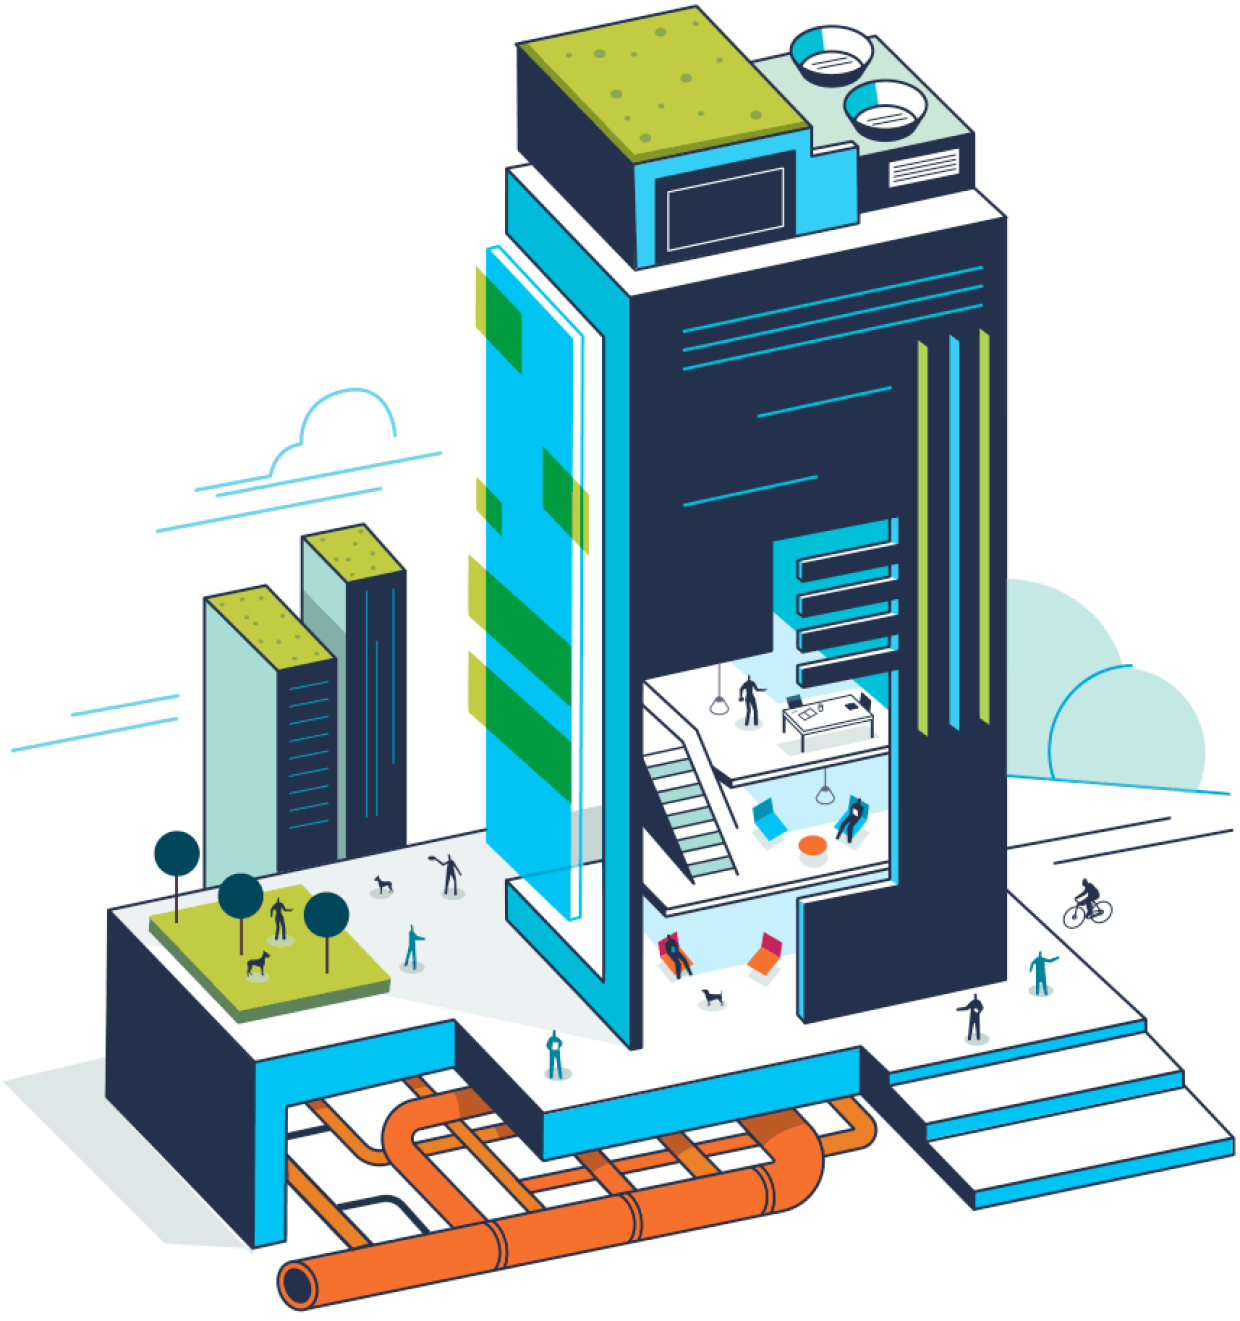 An illustration of an Amazon building that features a green roof, orange pipes, employees working inside and people outside with their pet dogs